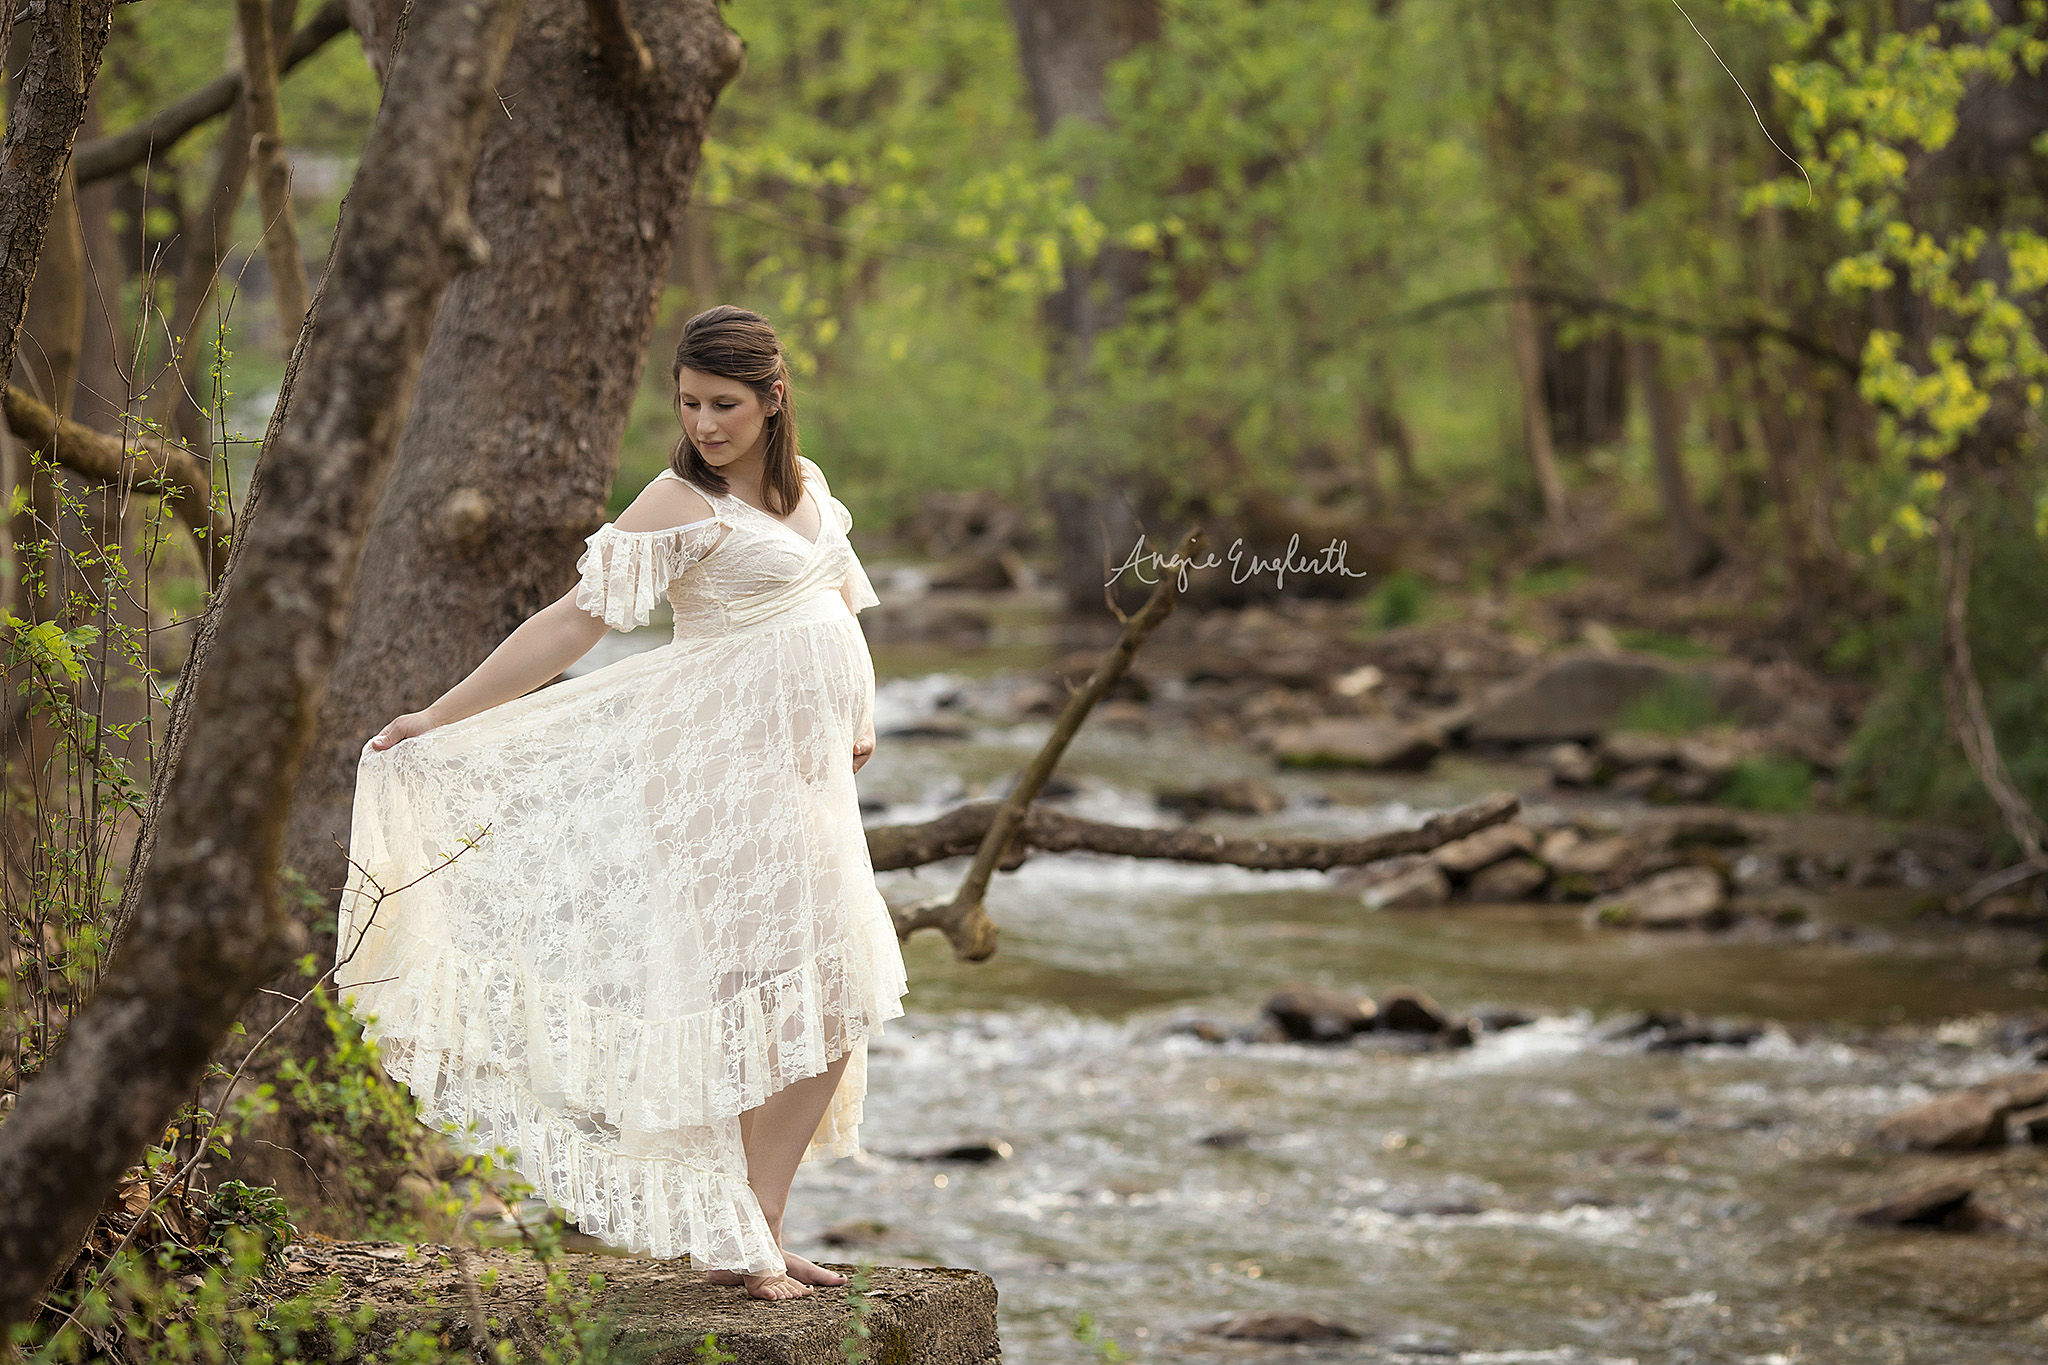 maternity photography tips image